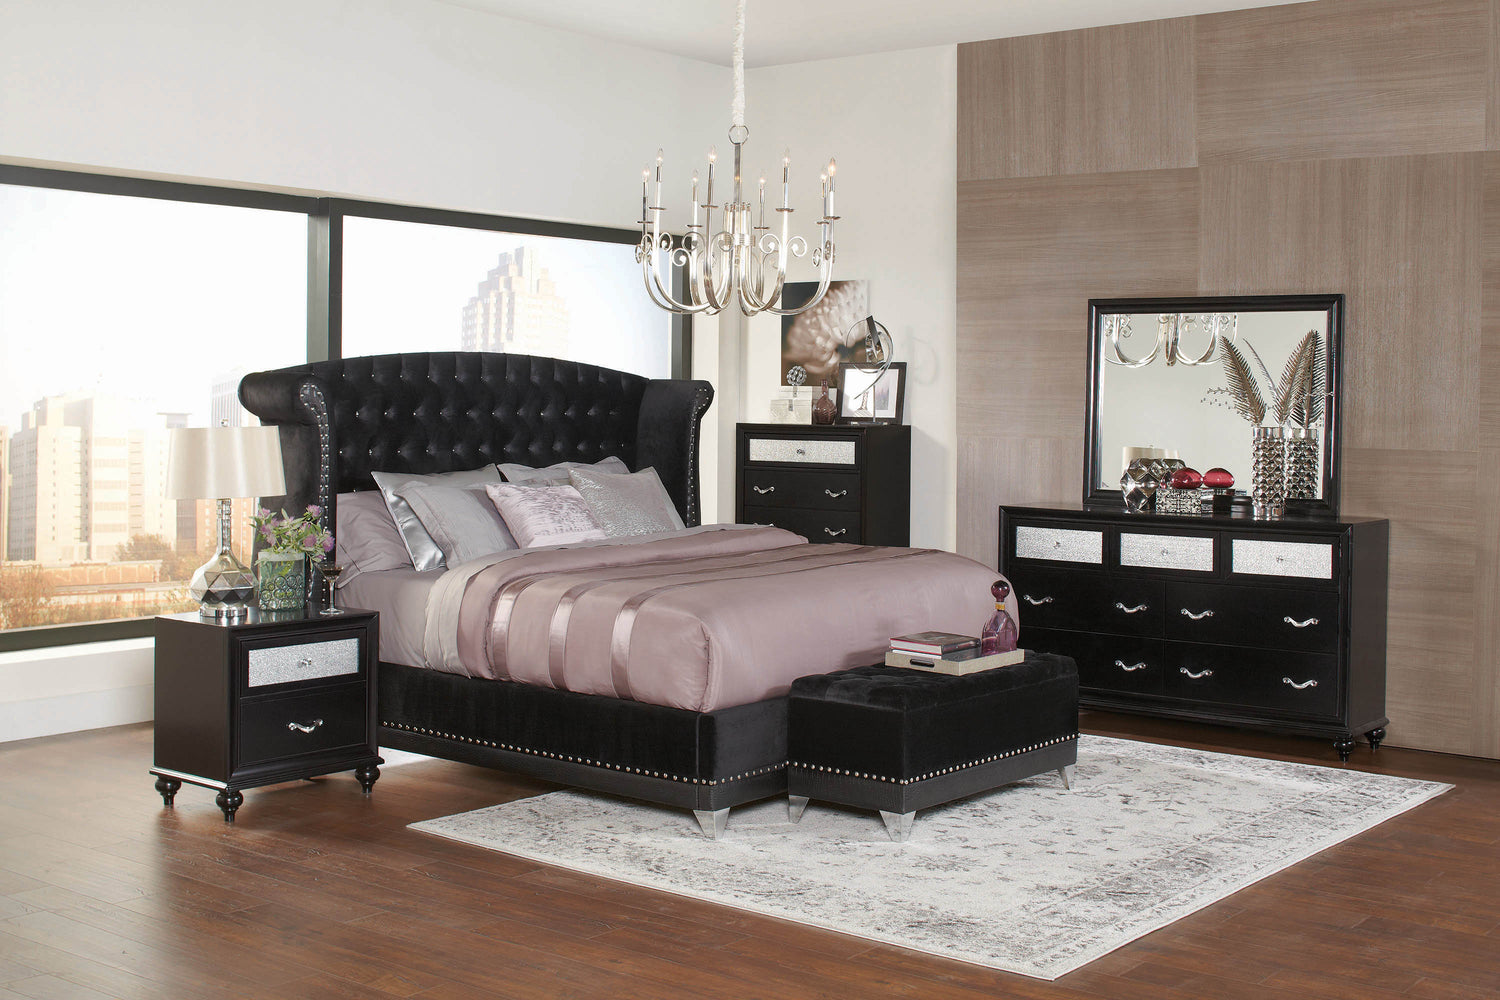 Barzini_Black_Upholstered_King_Bed_1